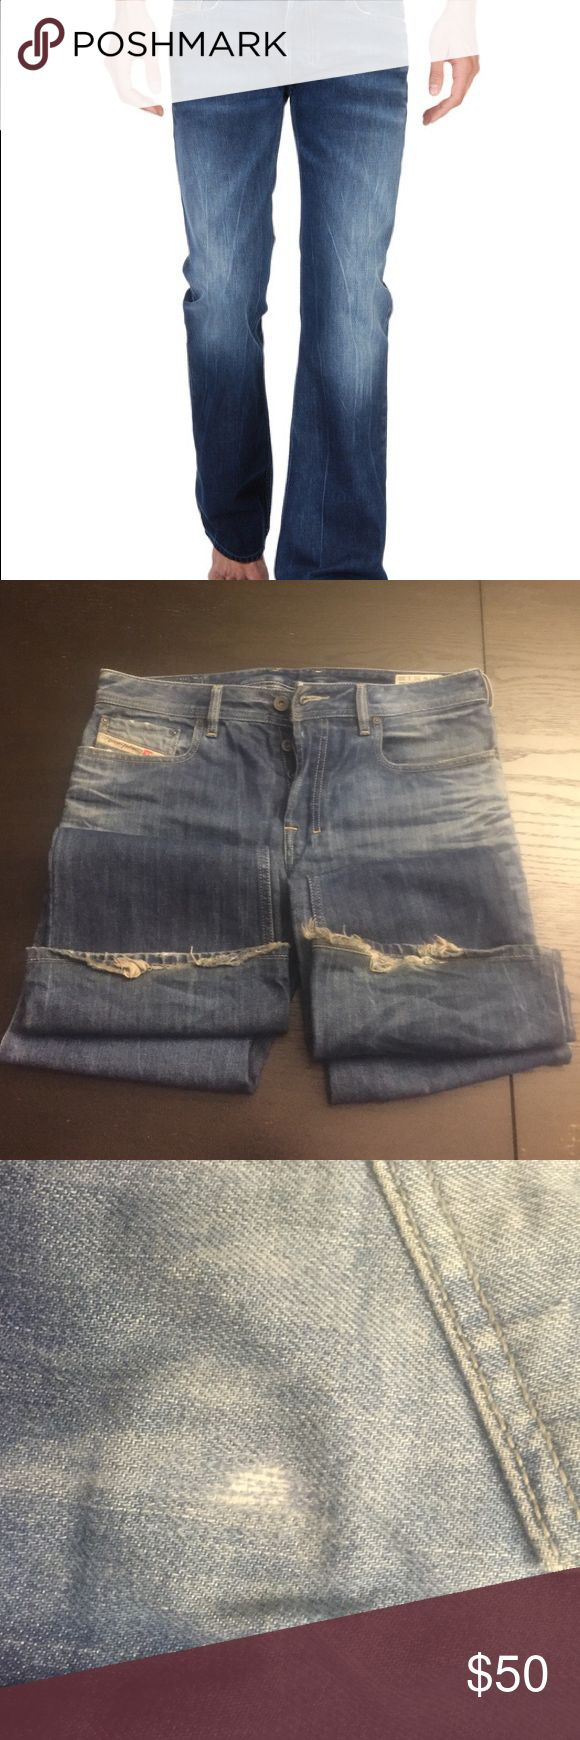 "Diesel ZATHAN Jeans Bootcut Wash 008M2. Cuffs professionally reattached to 28.5"" inseam. Pic 2 shows cuffs. Pics 3&4 show patch (barely noticeable). Diesel Jeans Bootcut"